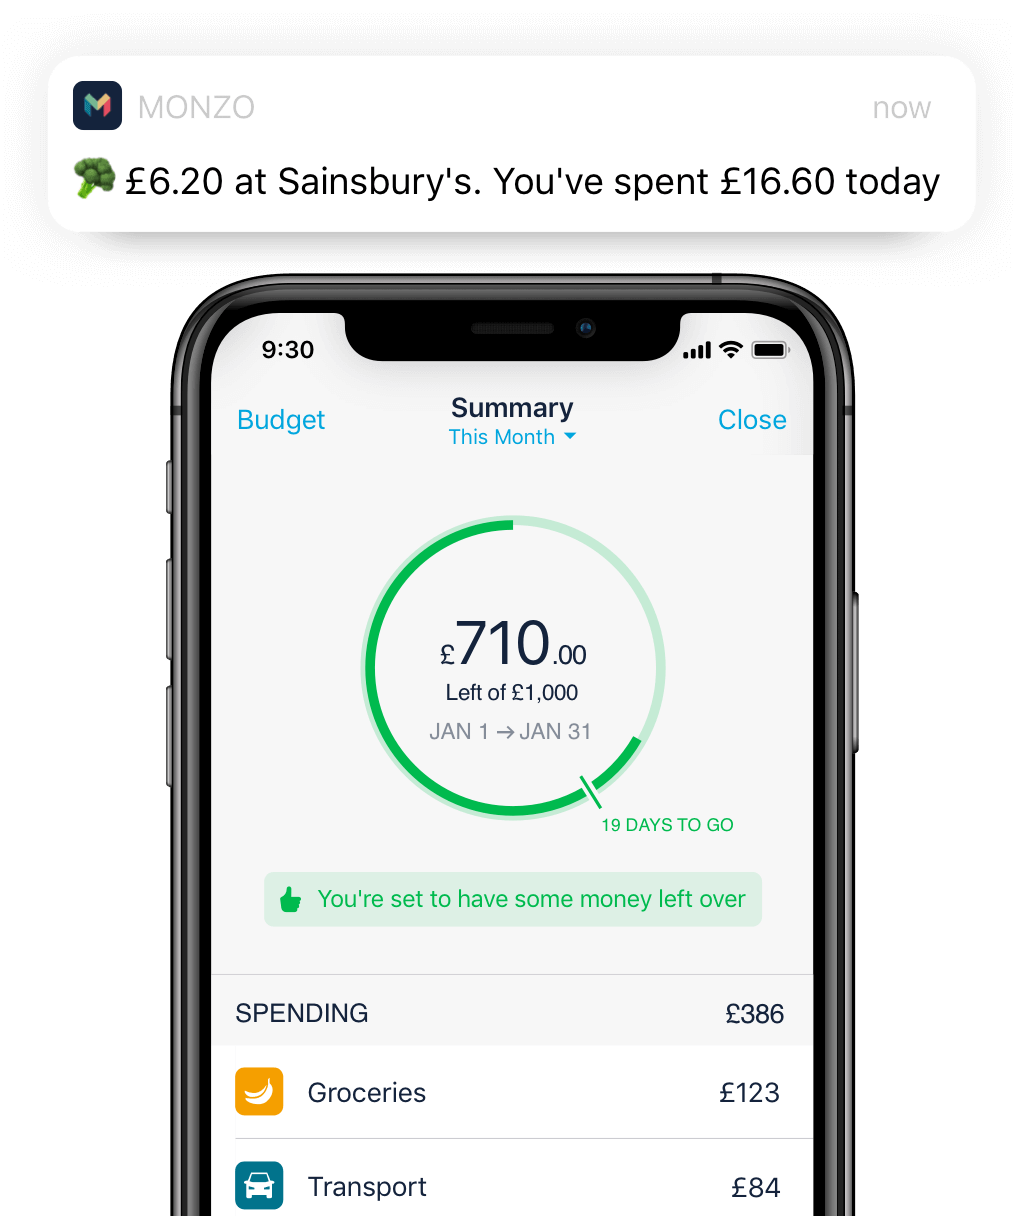 Monzo app showing a month summary with spending notifications around it